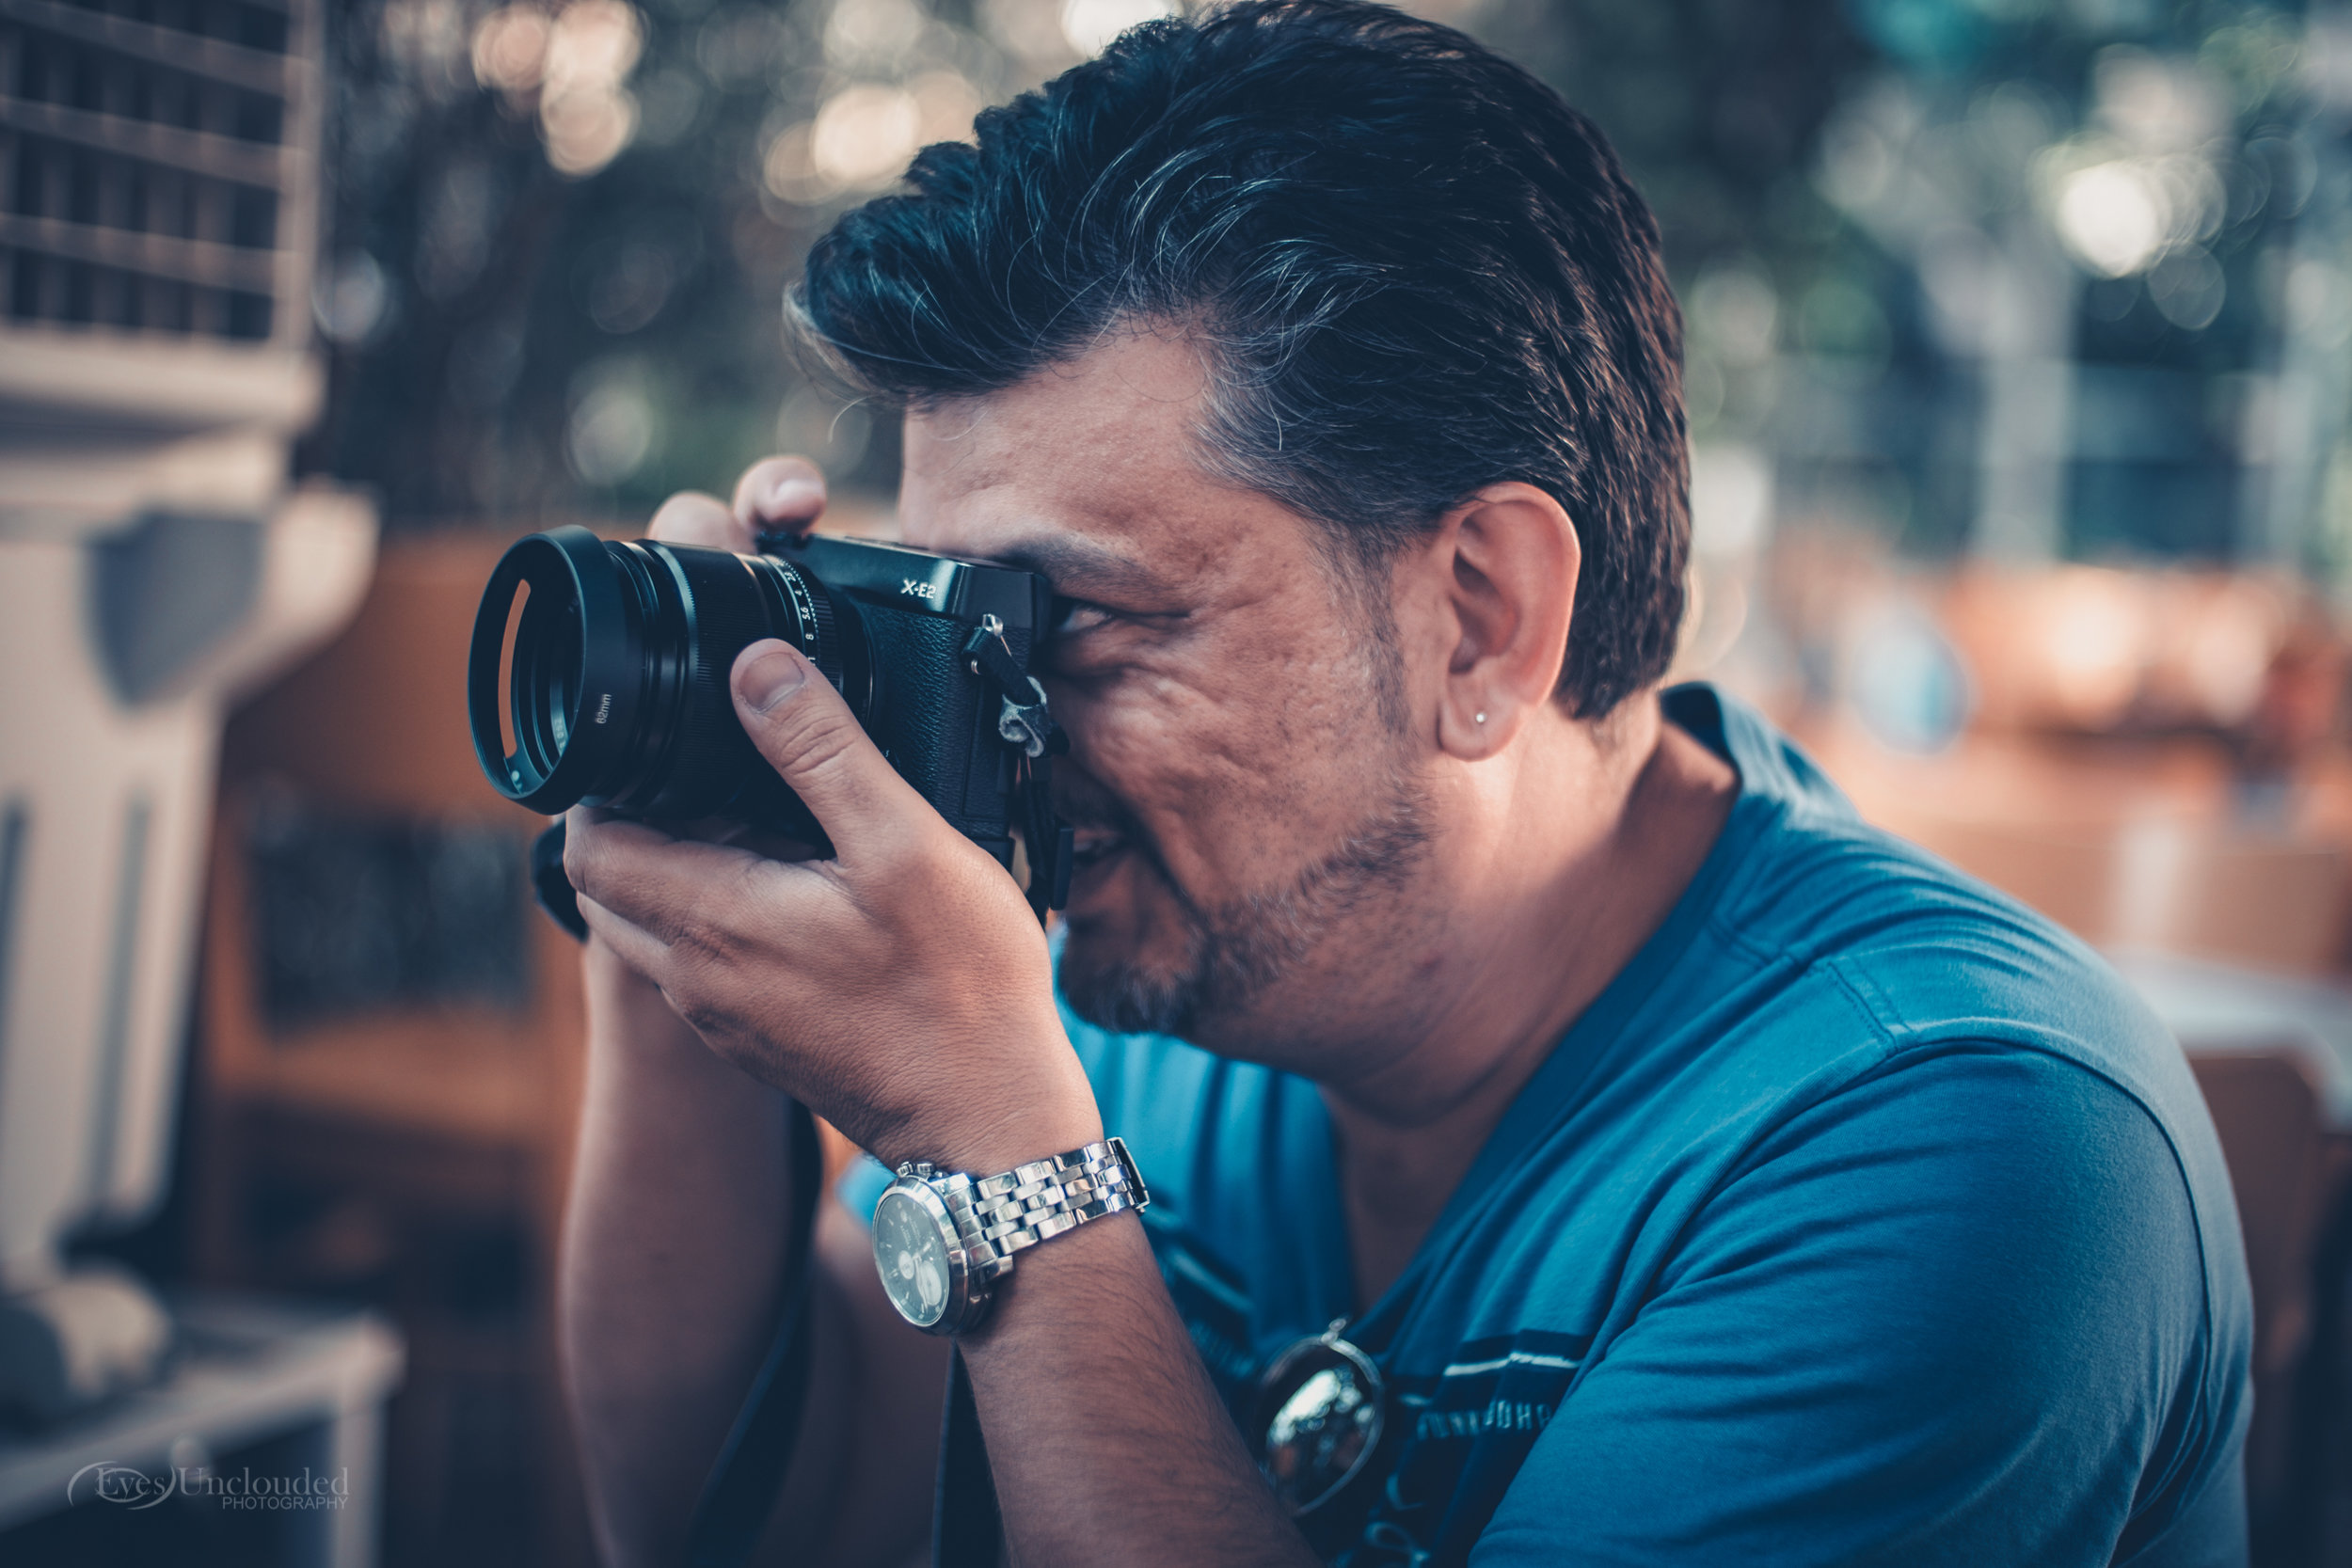 Ioannis having parted with the Lens Turbo, finds solace in the Fujinon 56mm f1.2